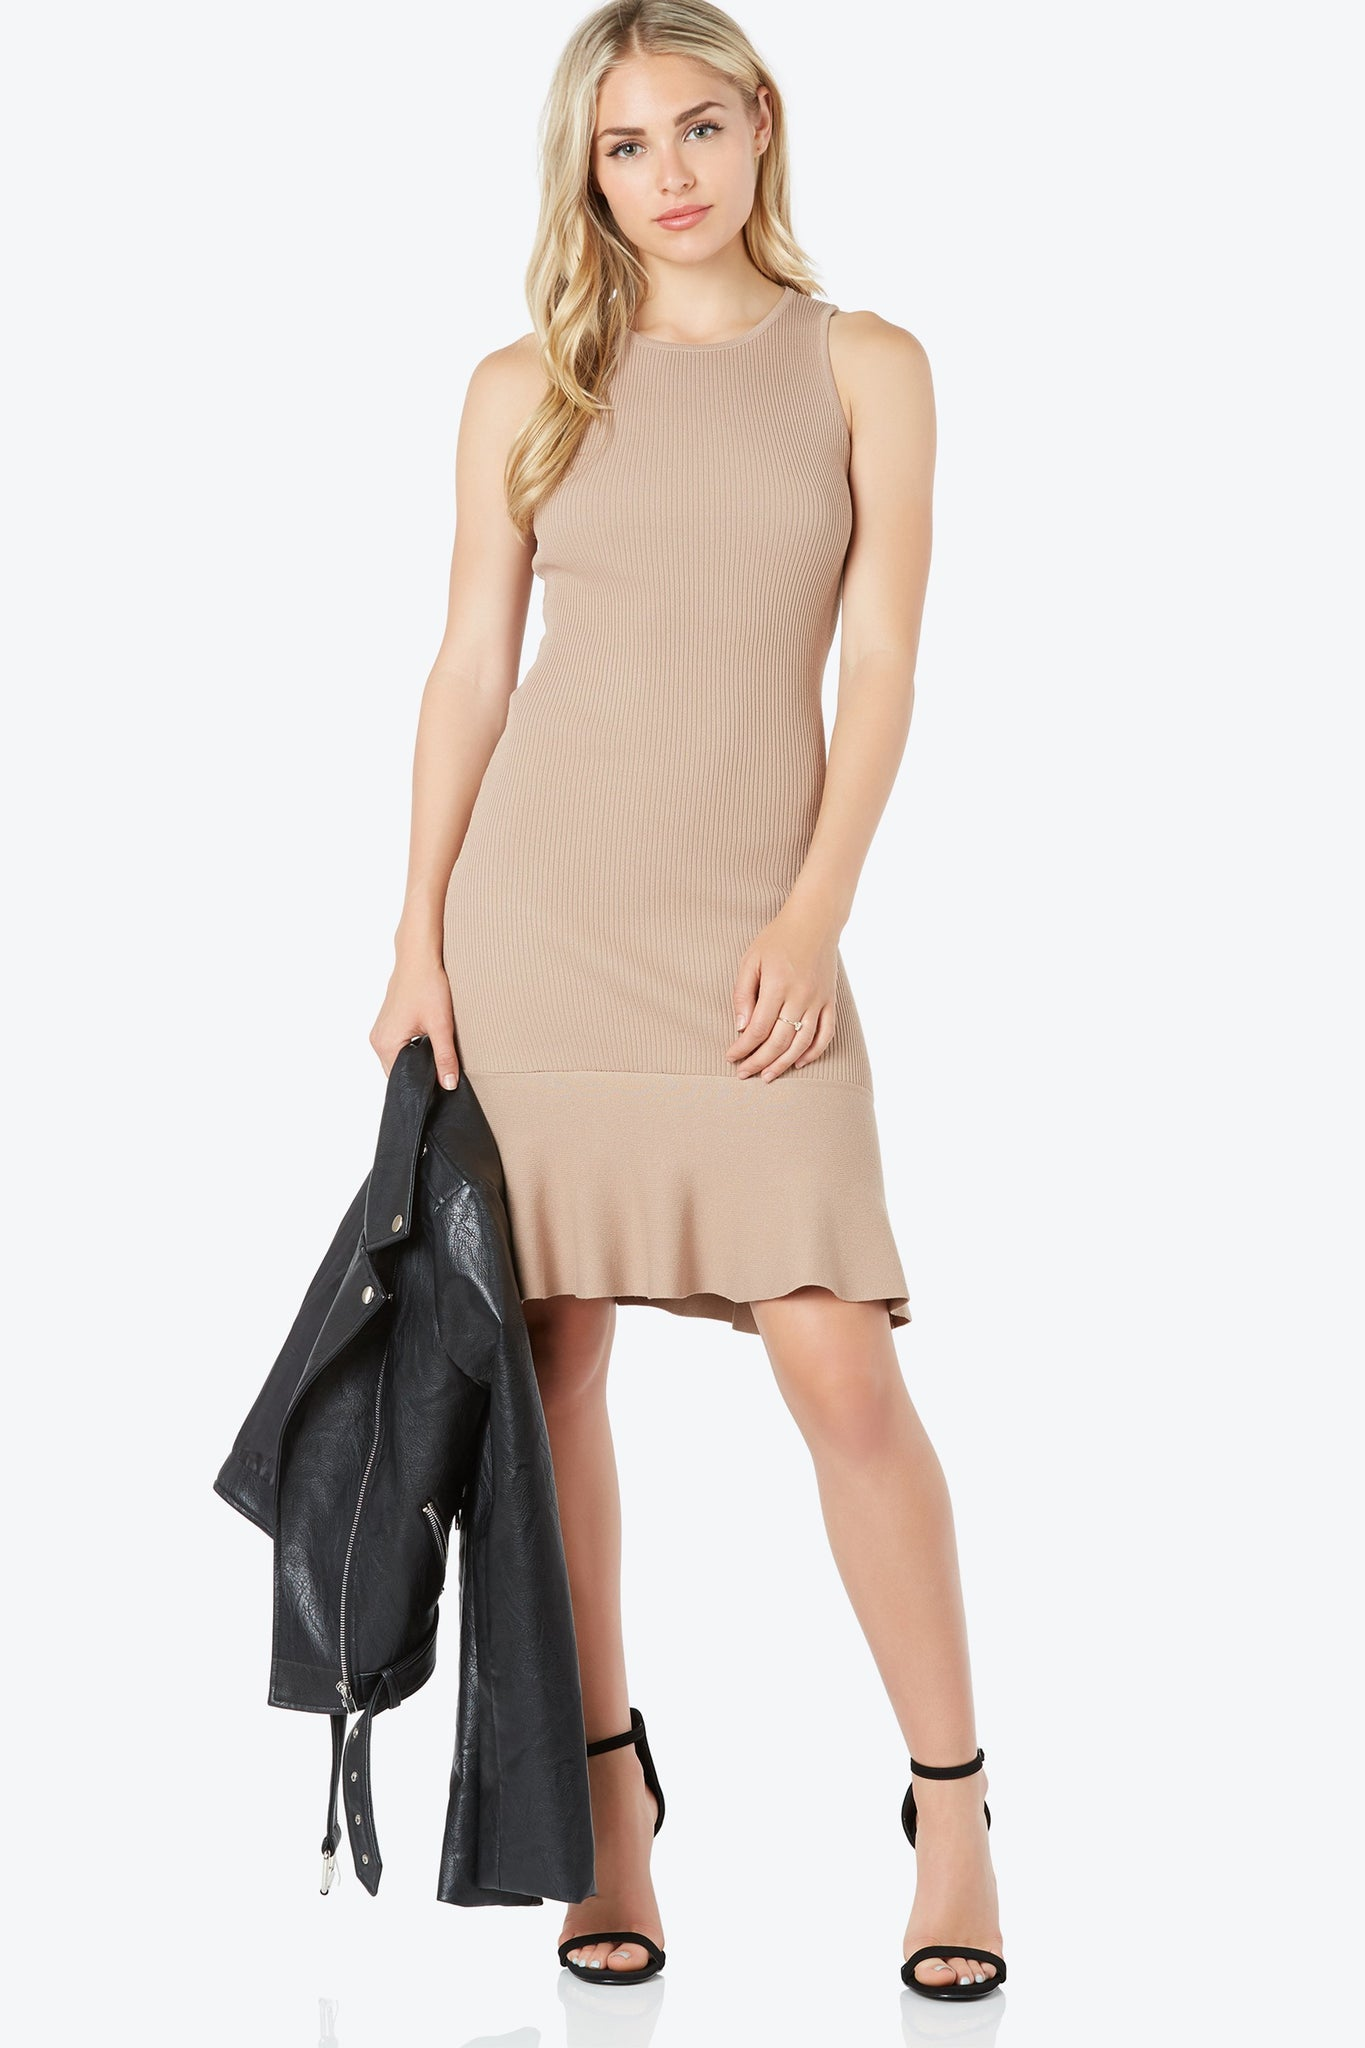 Sleeveless rib knit dress with stretchy bodycon fit. Rounded neckline with flare hem finish.